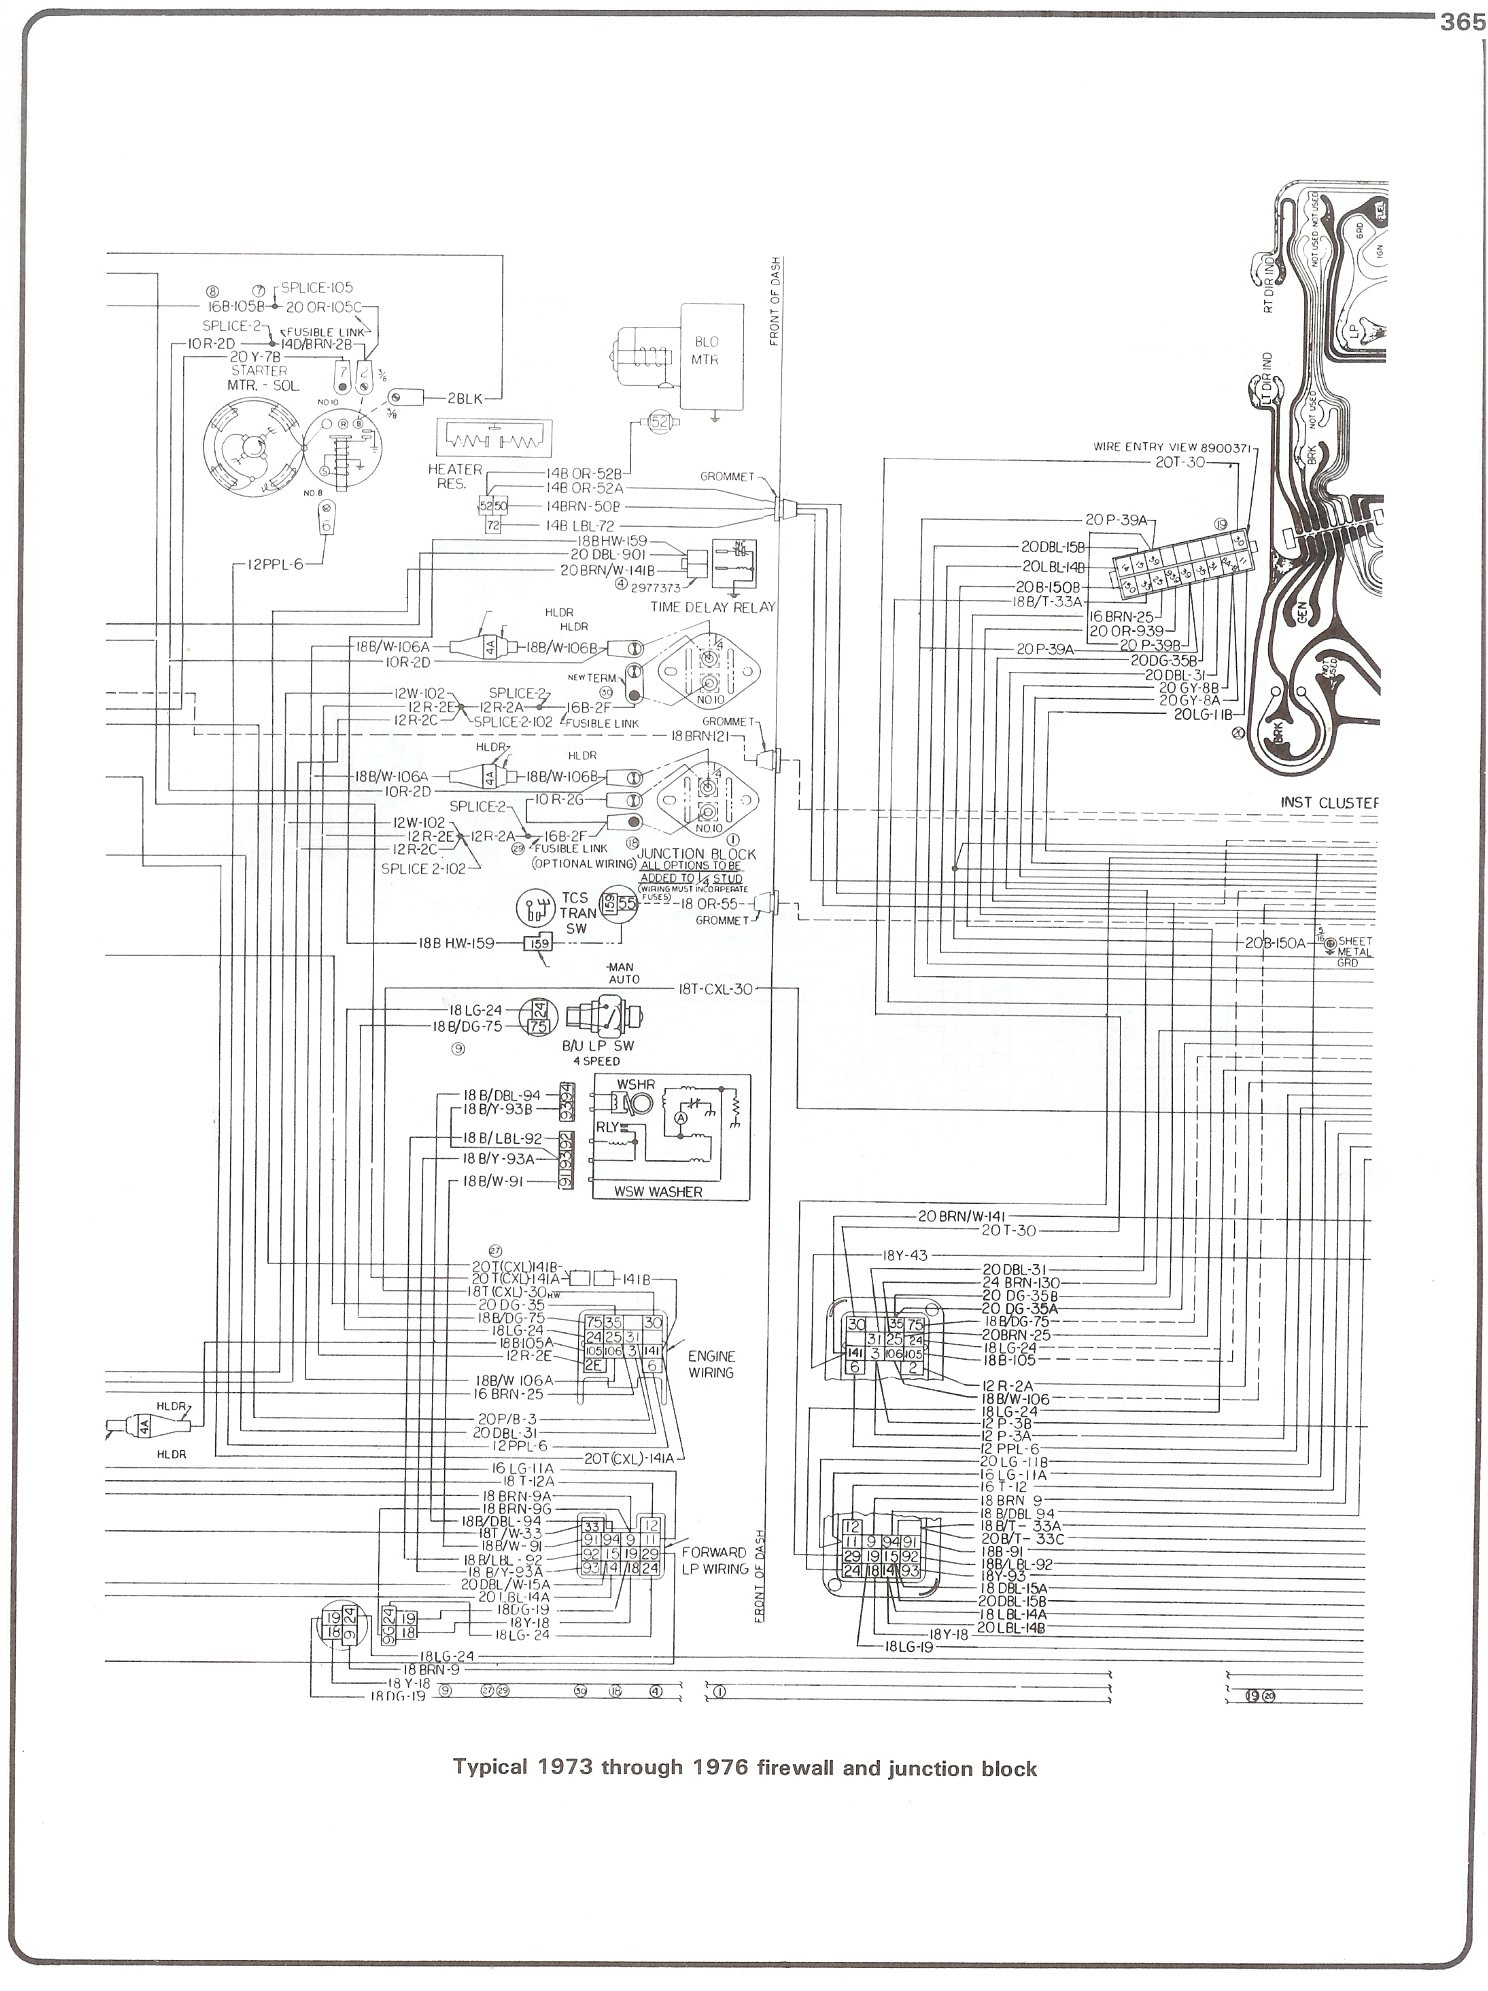 Complete 73 87 Wiring Diagrams Ford F150 Chart 76 Firewall Junction